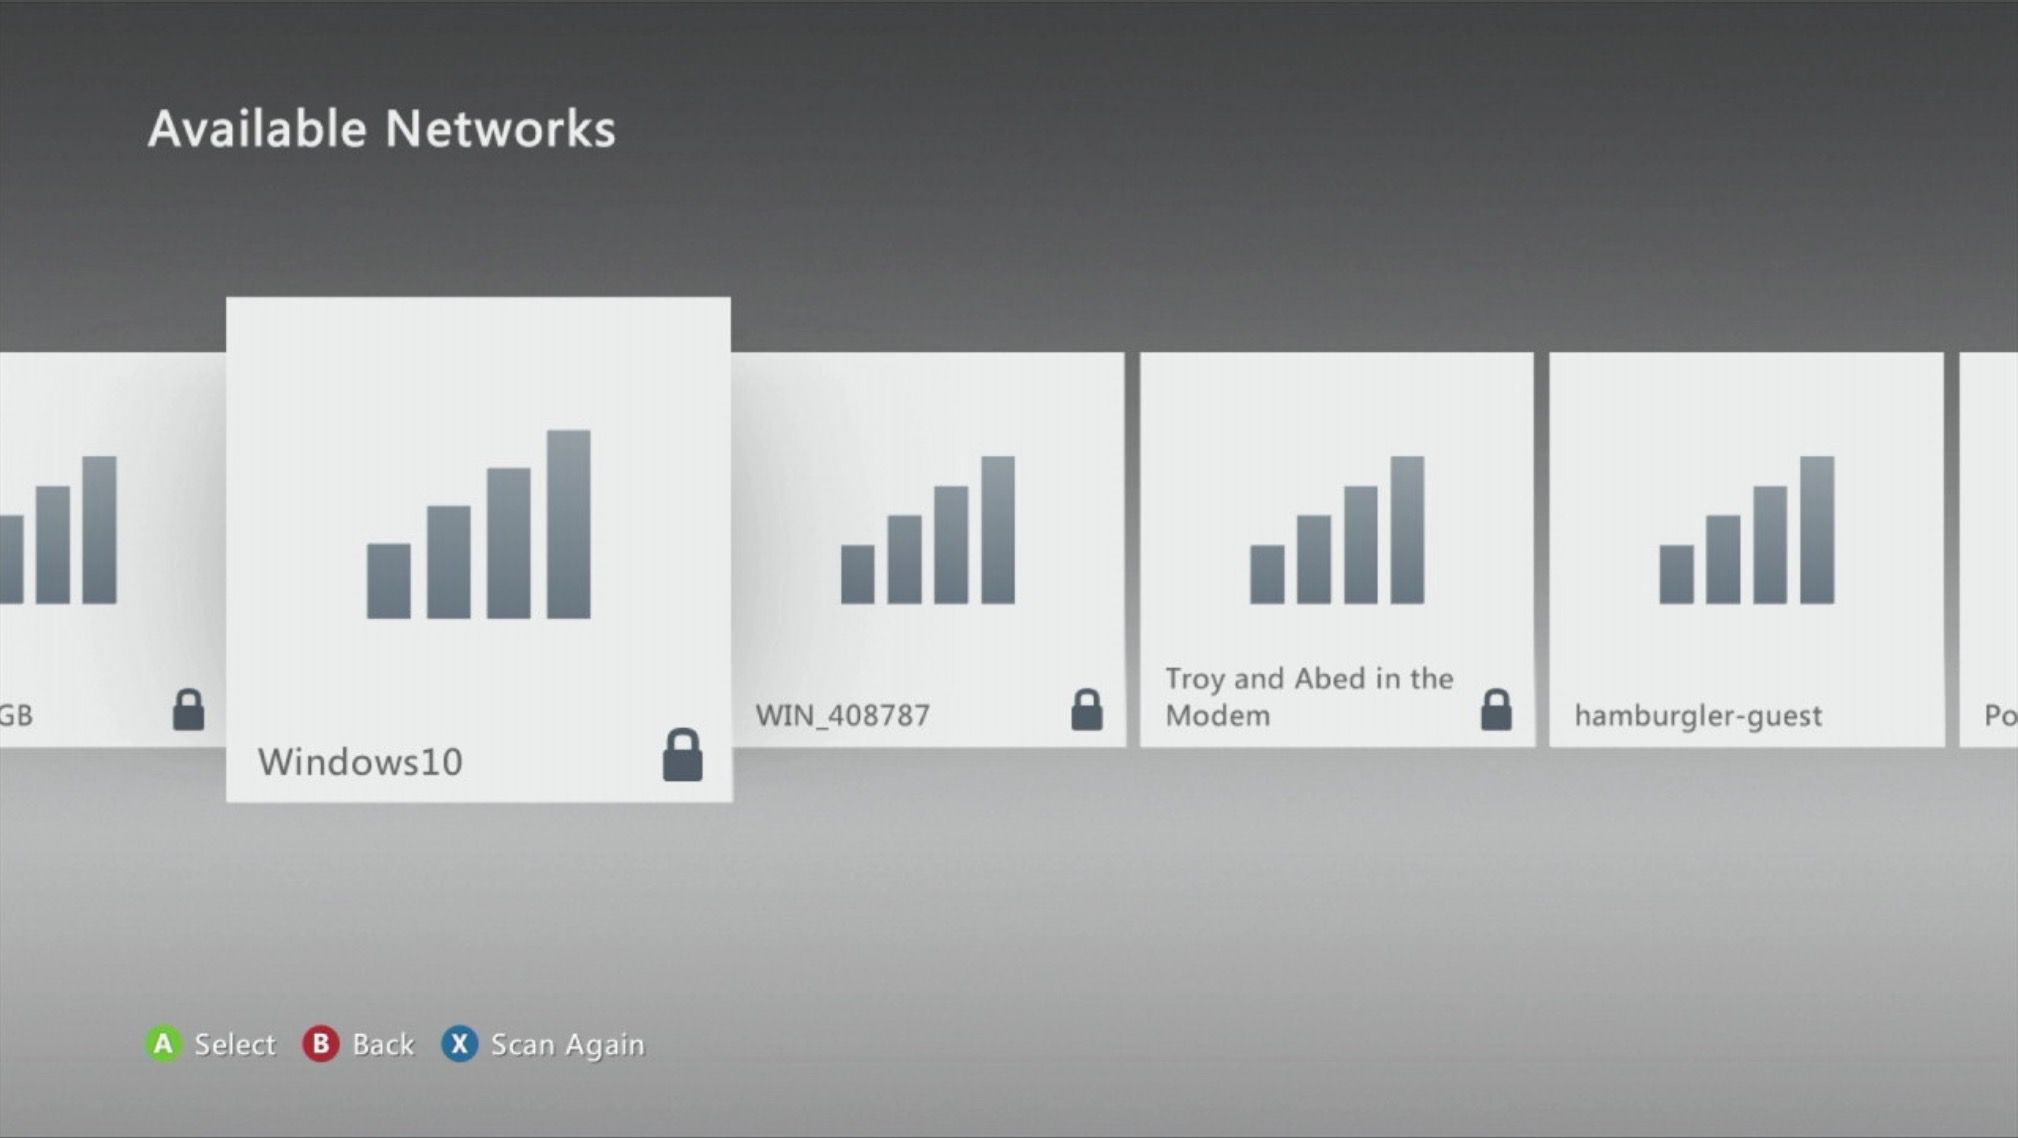 Available wireless networks in an Xbox 360